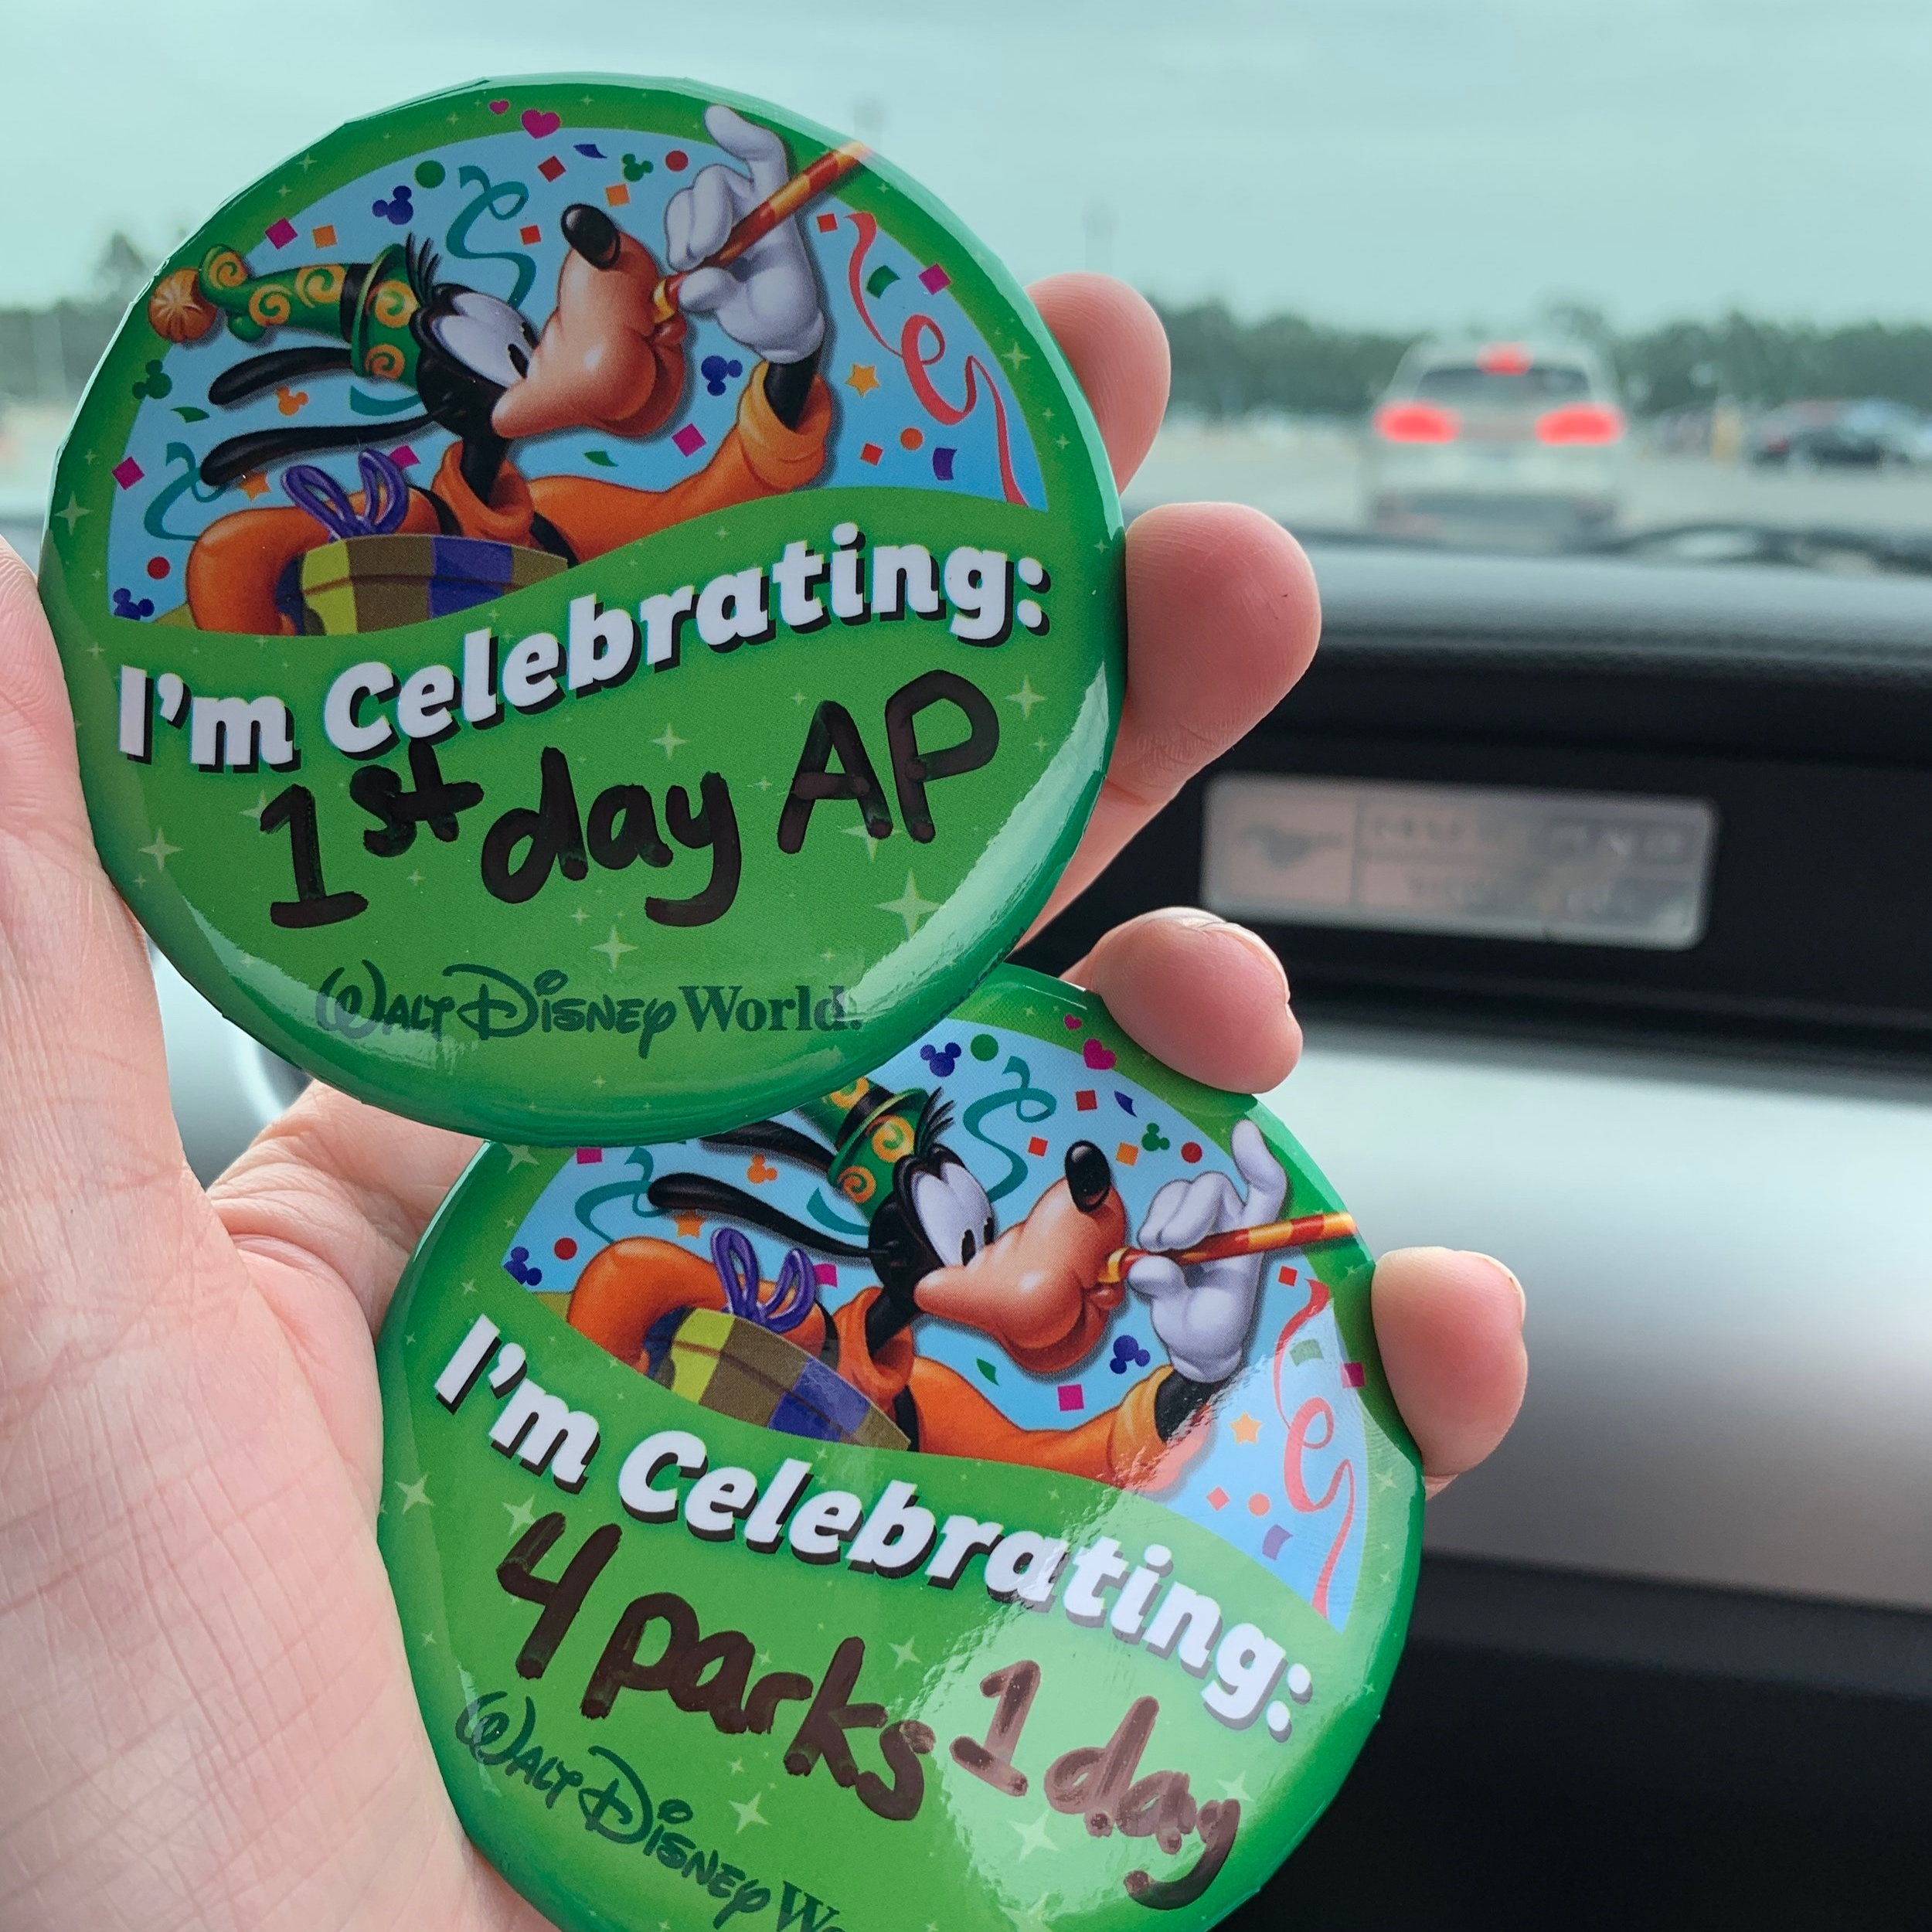 We got some celebratory buttons for the day.